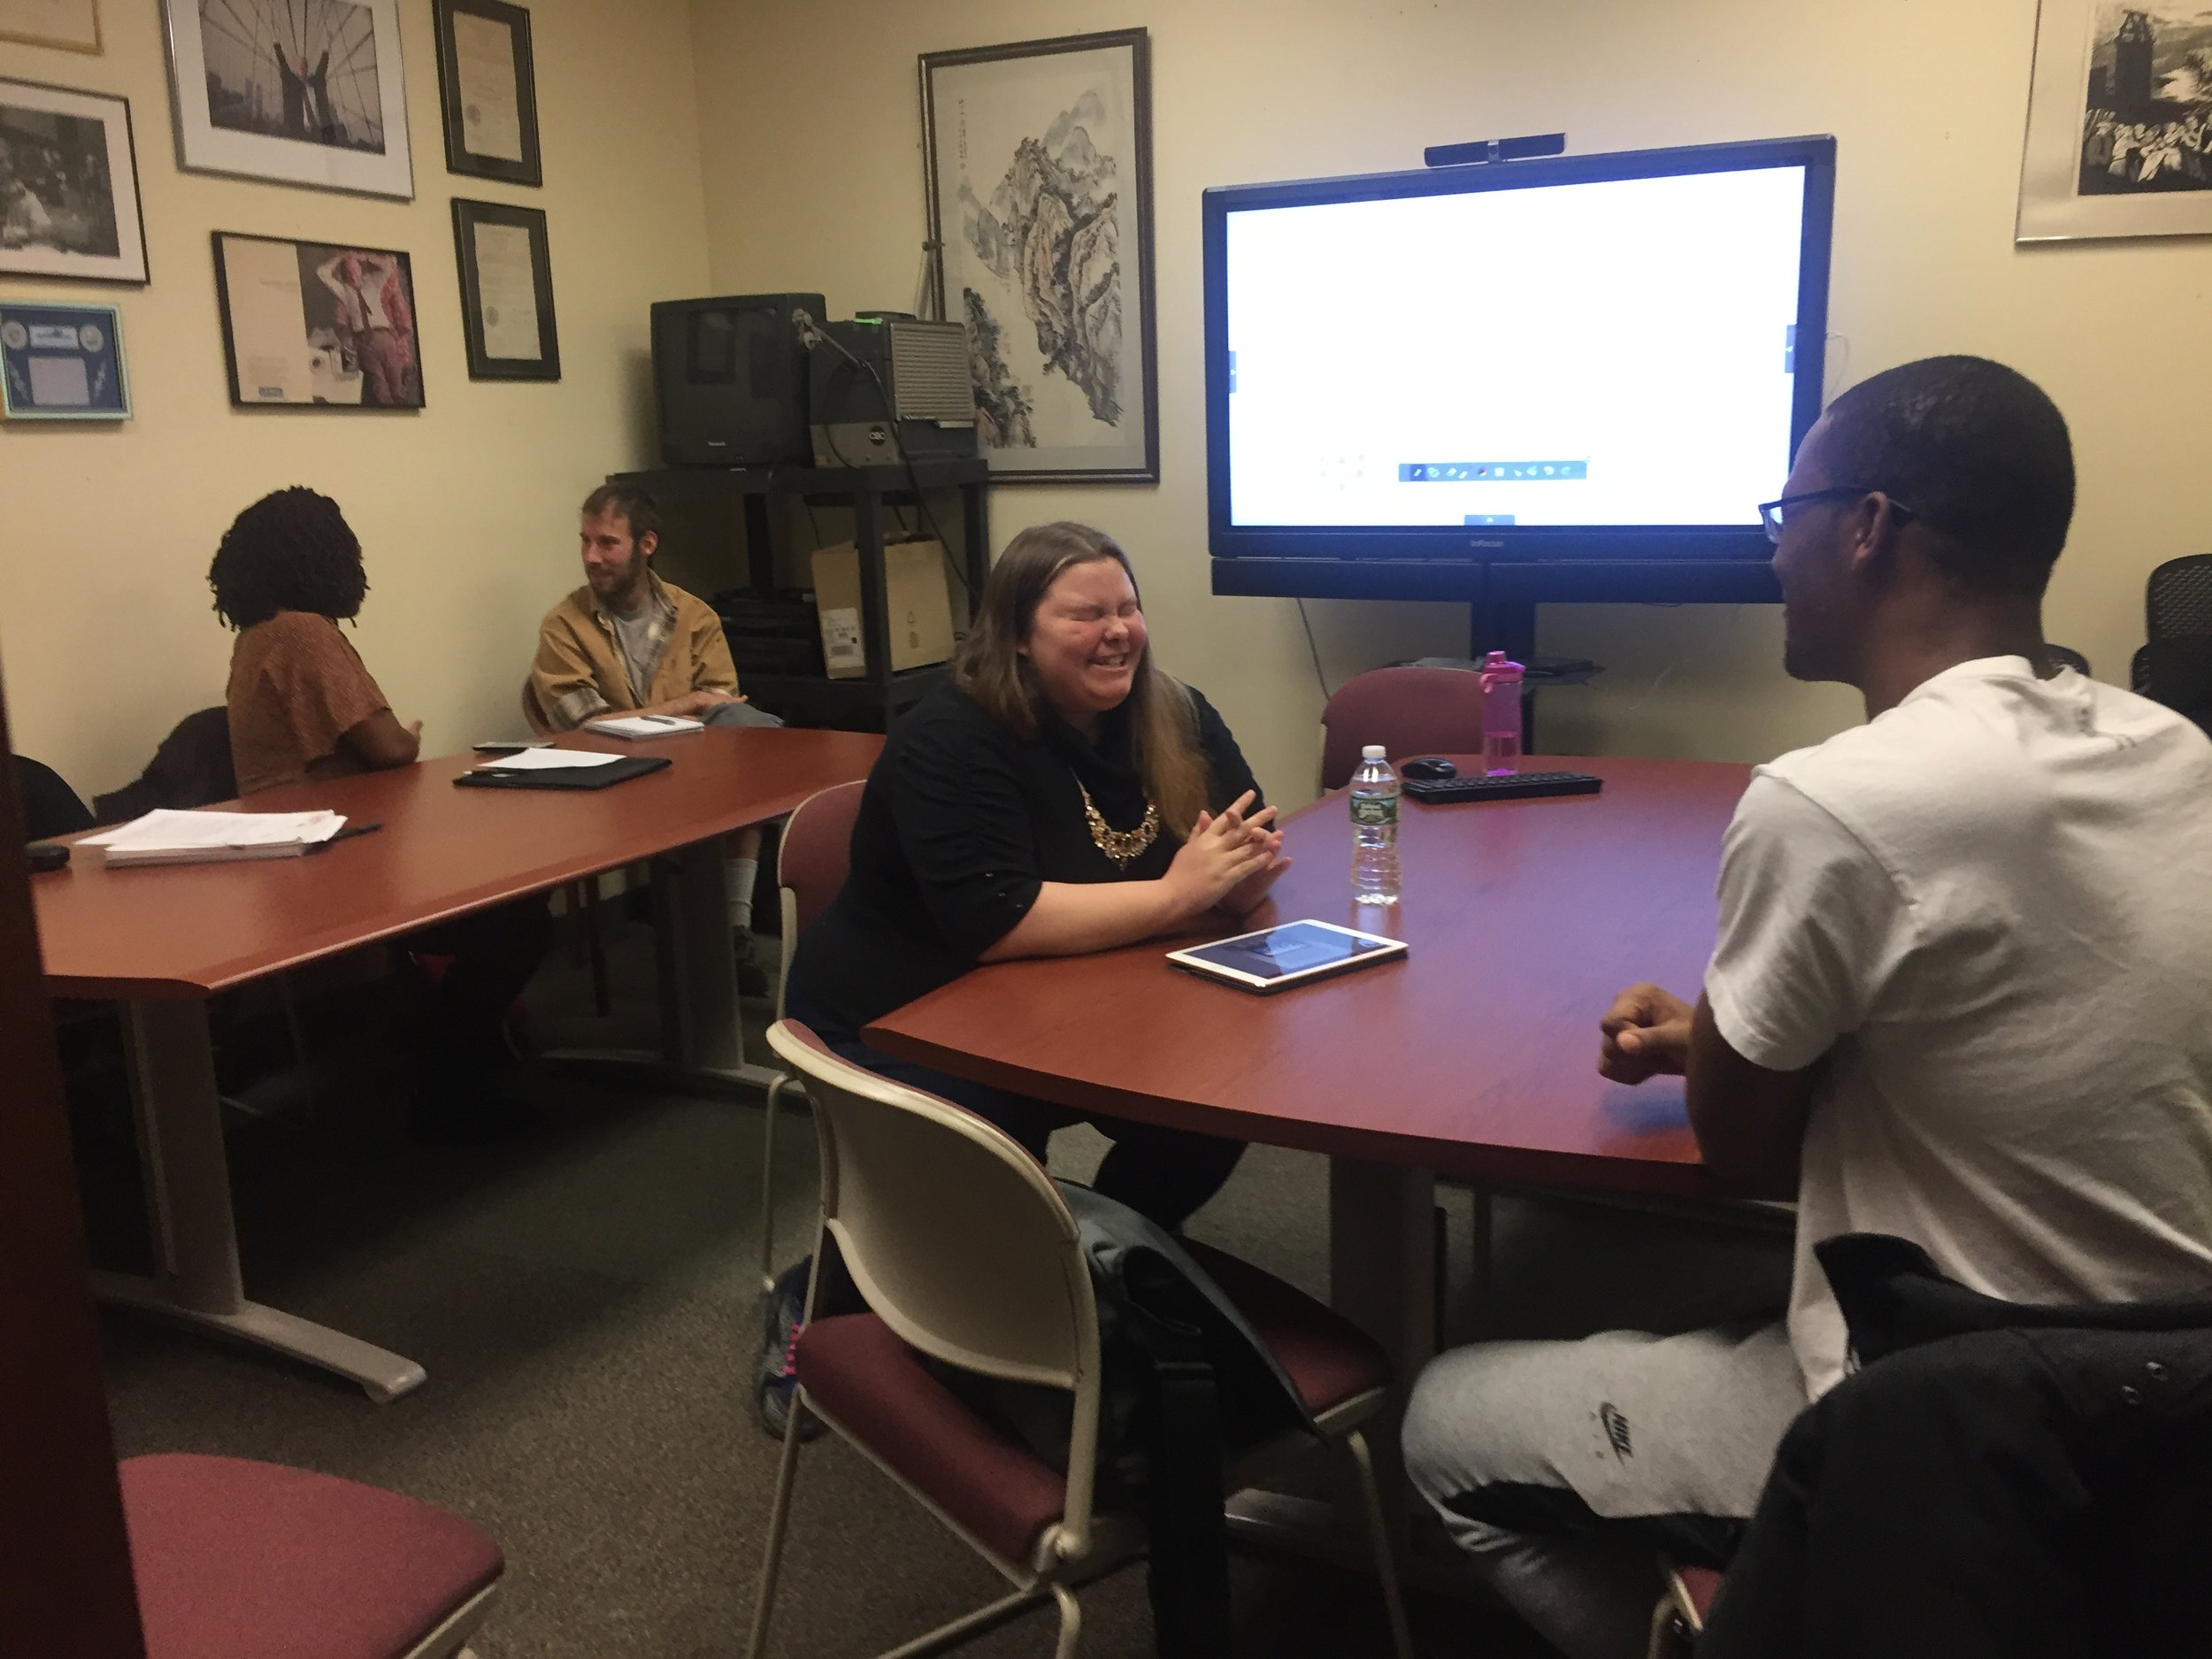 A student cringes as she attempts to interview her peer during a workshop at the LaGuardia and Wagner Archives. Photo by Molly Rosner.